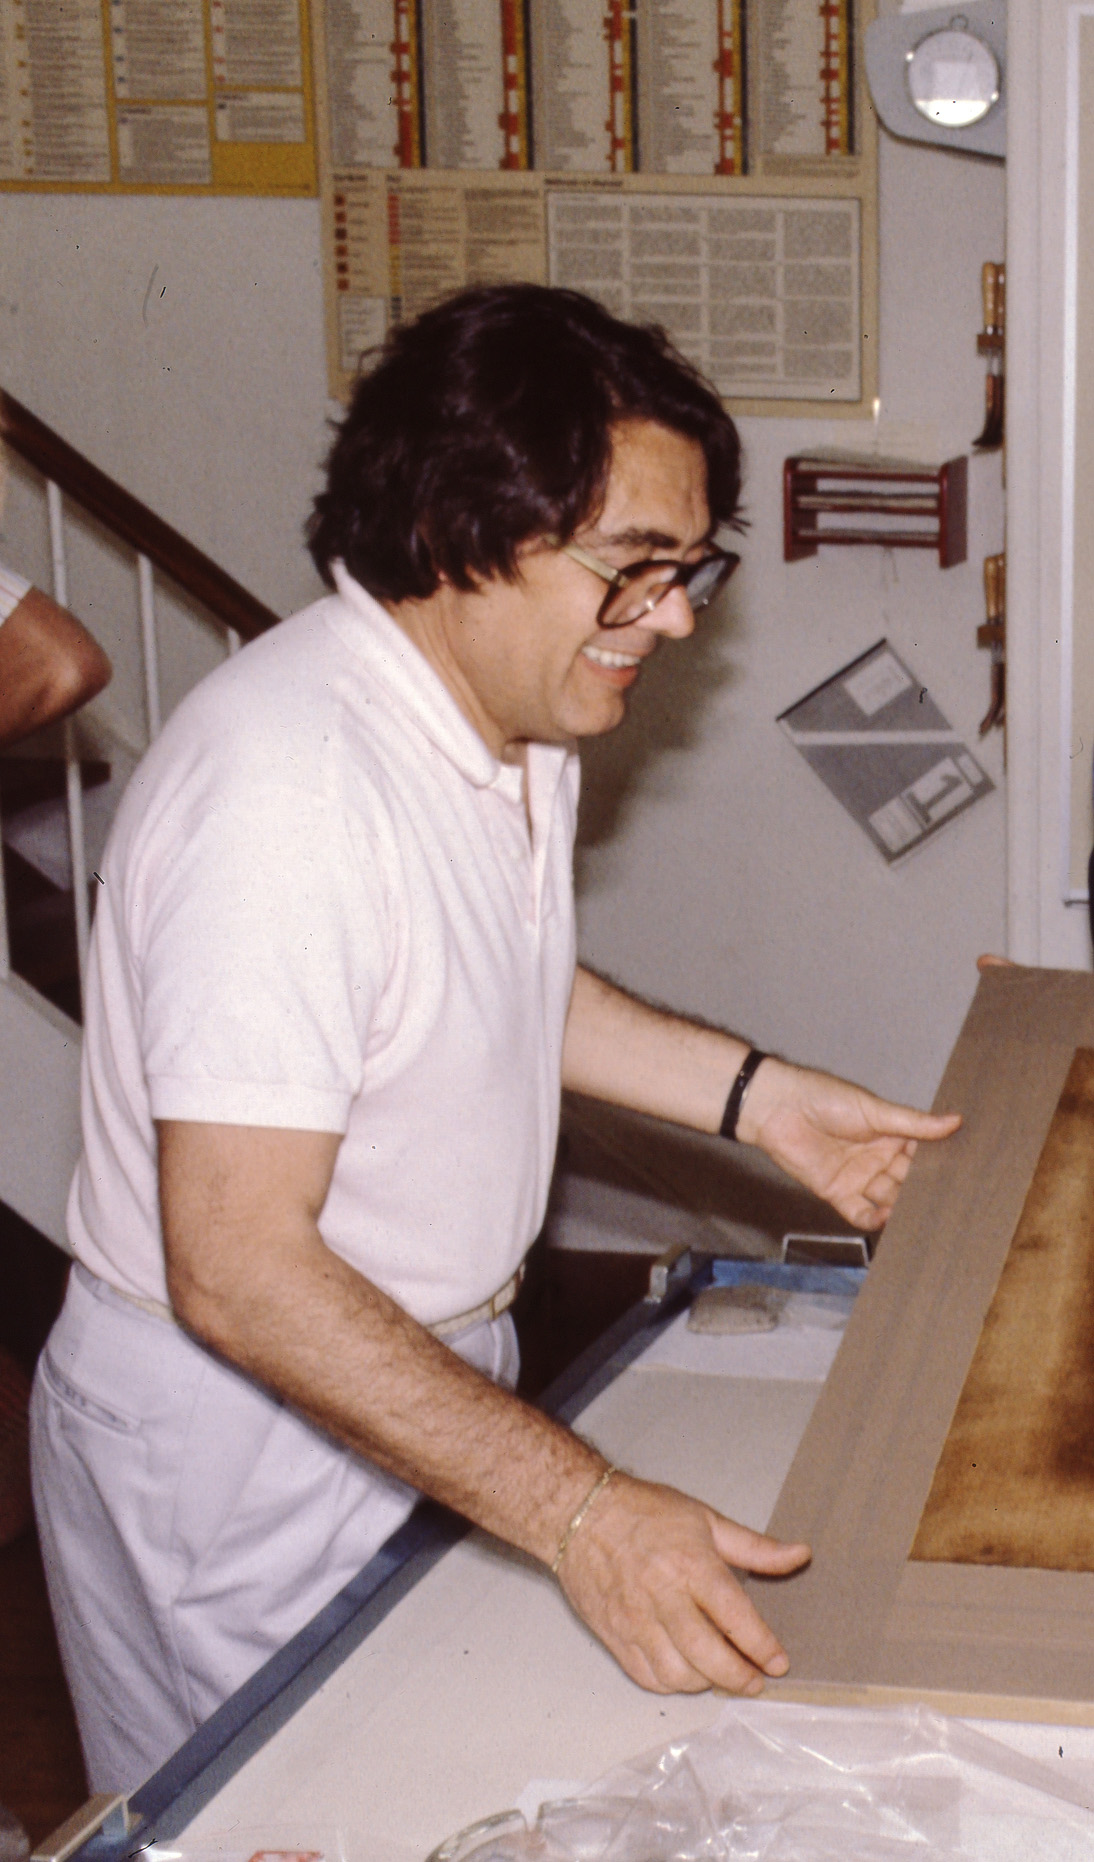 Puccio Speroni lecturing in an international summer school workshop (part of a series of workshops organized by and held at the School of Conservation and supported by ICCROM and The Getty) on structural treatments of canvas paintings in 1986. Image courtesy of Mikkel Scharff.